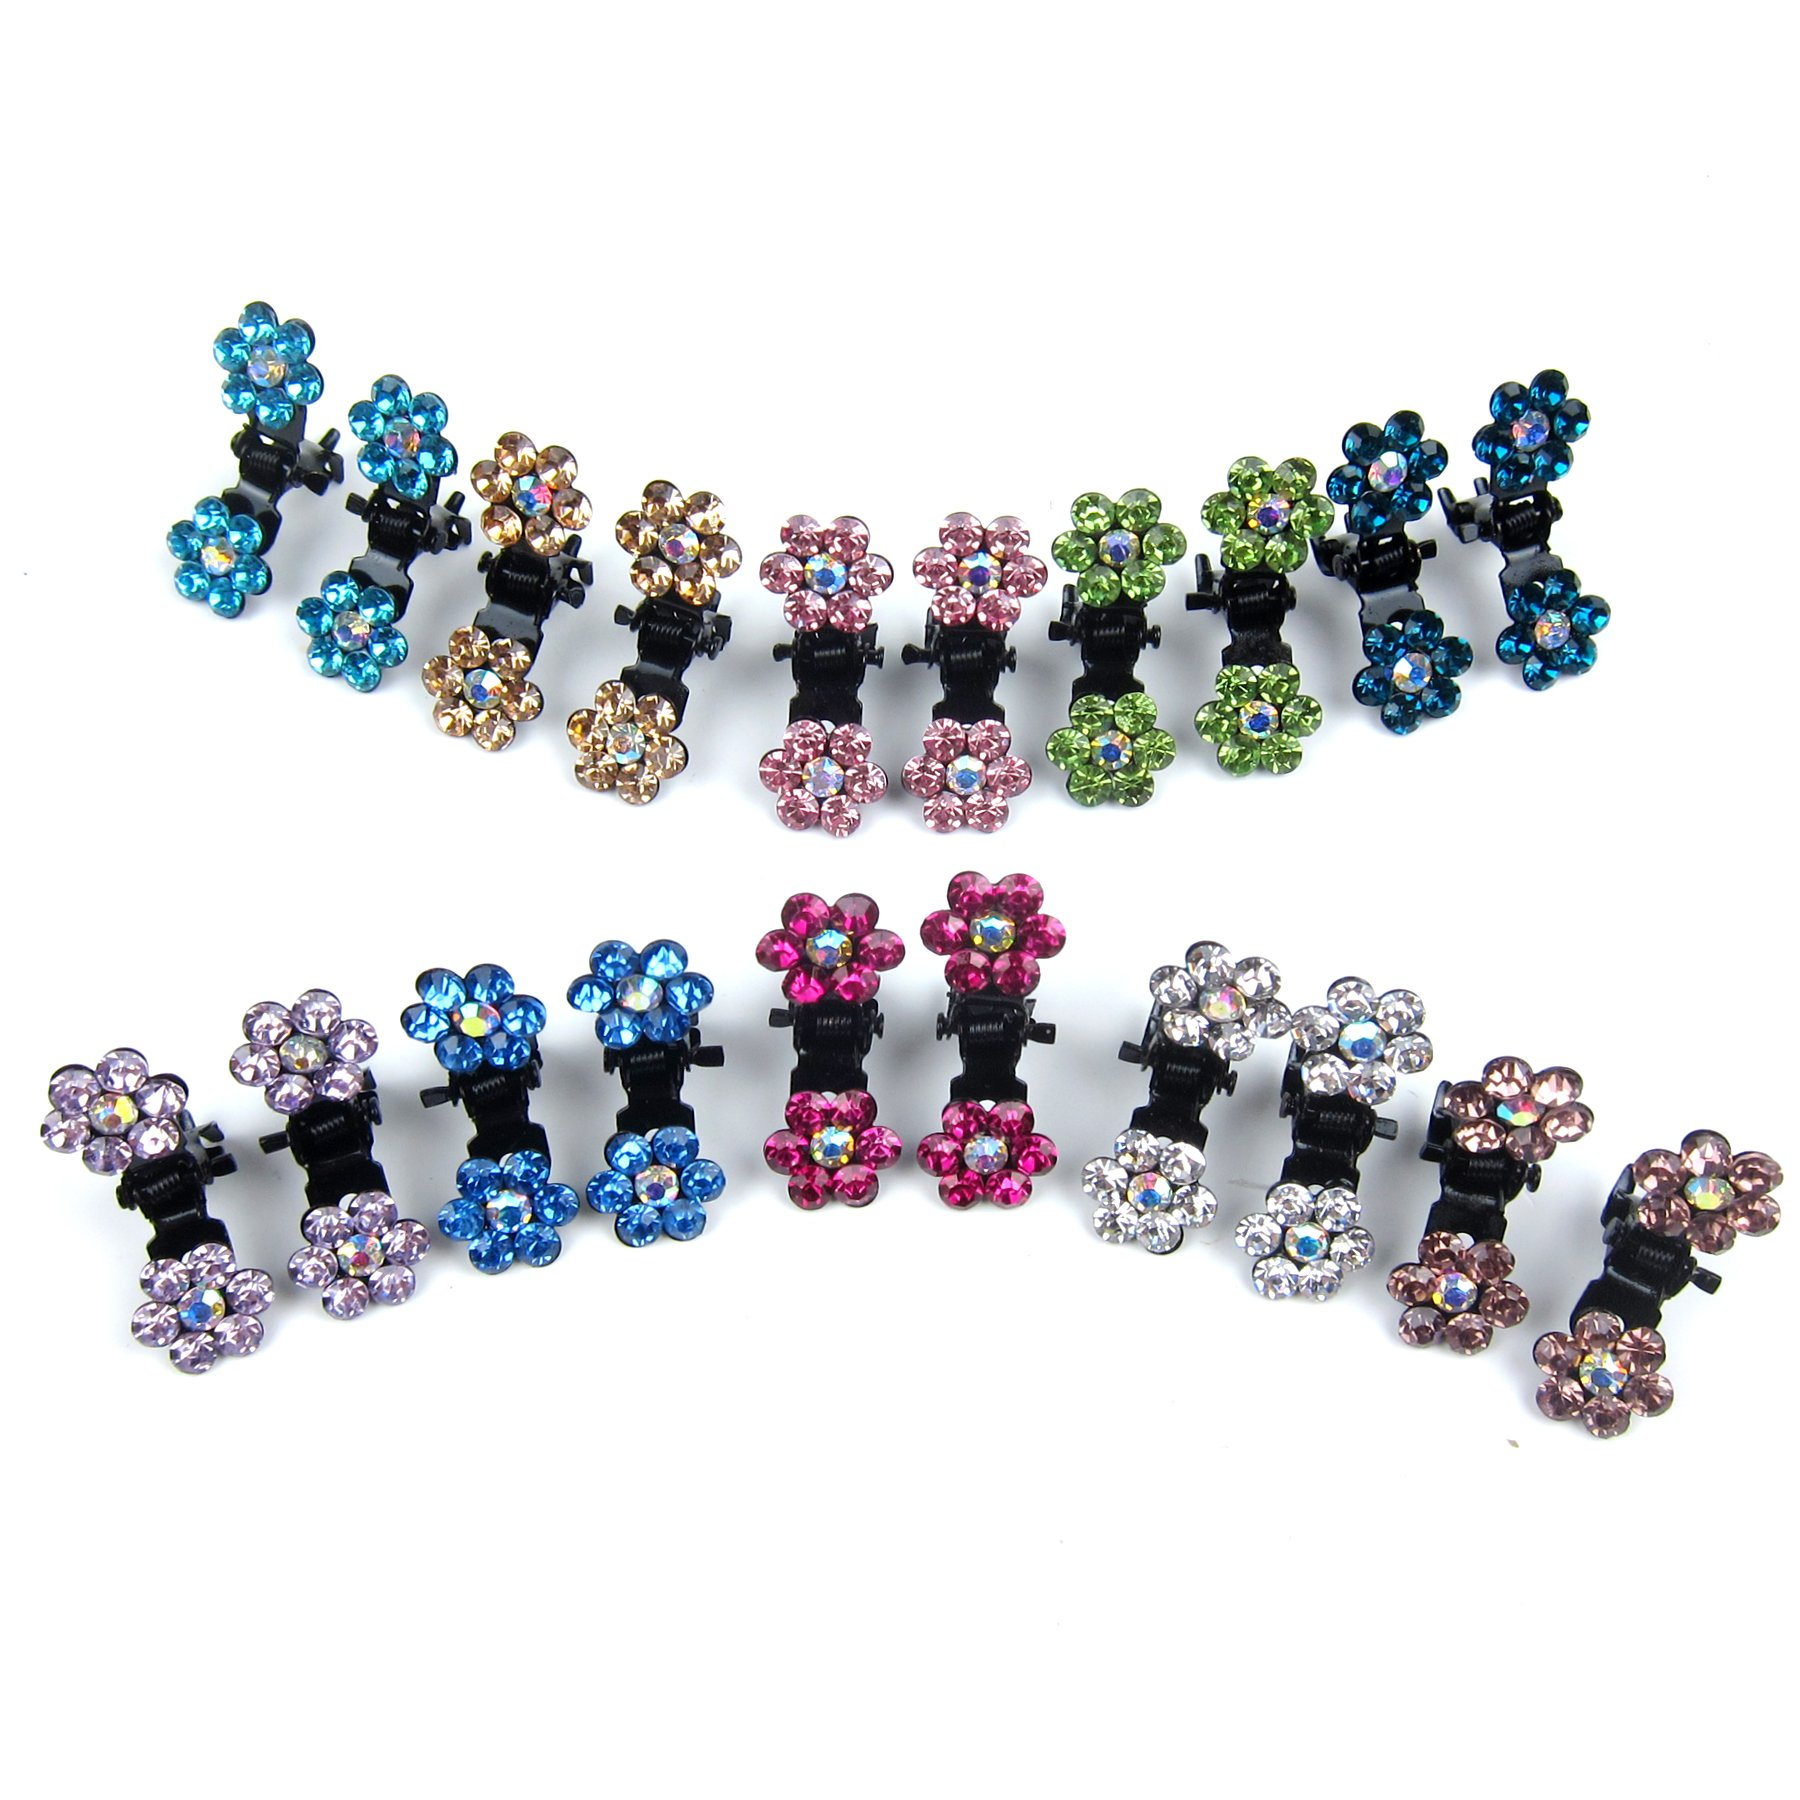 Alfie Pet by Petoga Couture - Dasie Rhinestone Flower Hair Clip 20-Piece Set for Dogs, Cats and Small Animals by Alfie (Image #2)